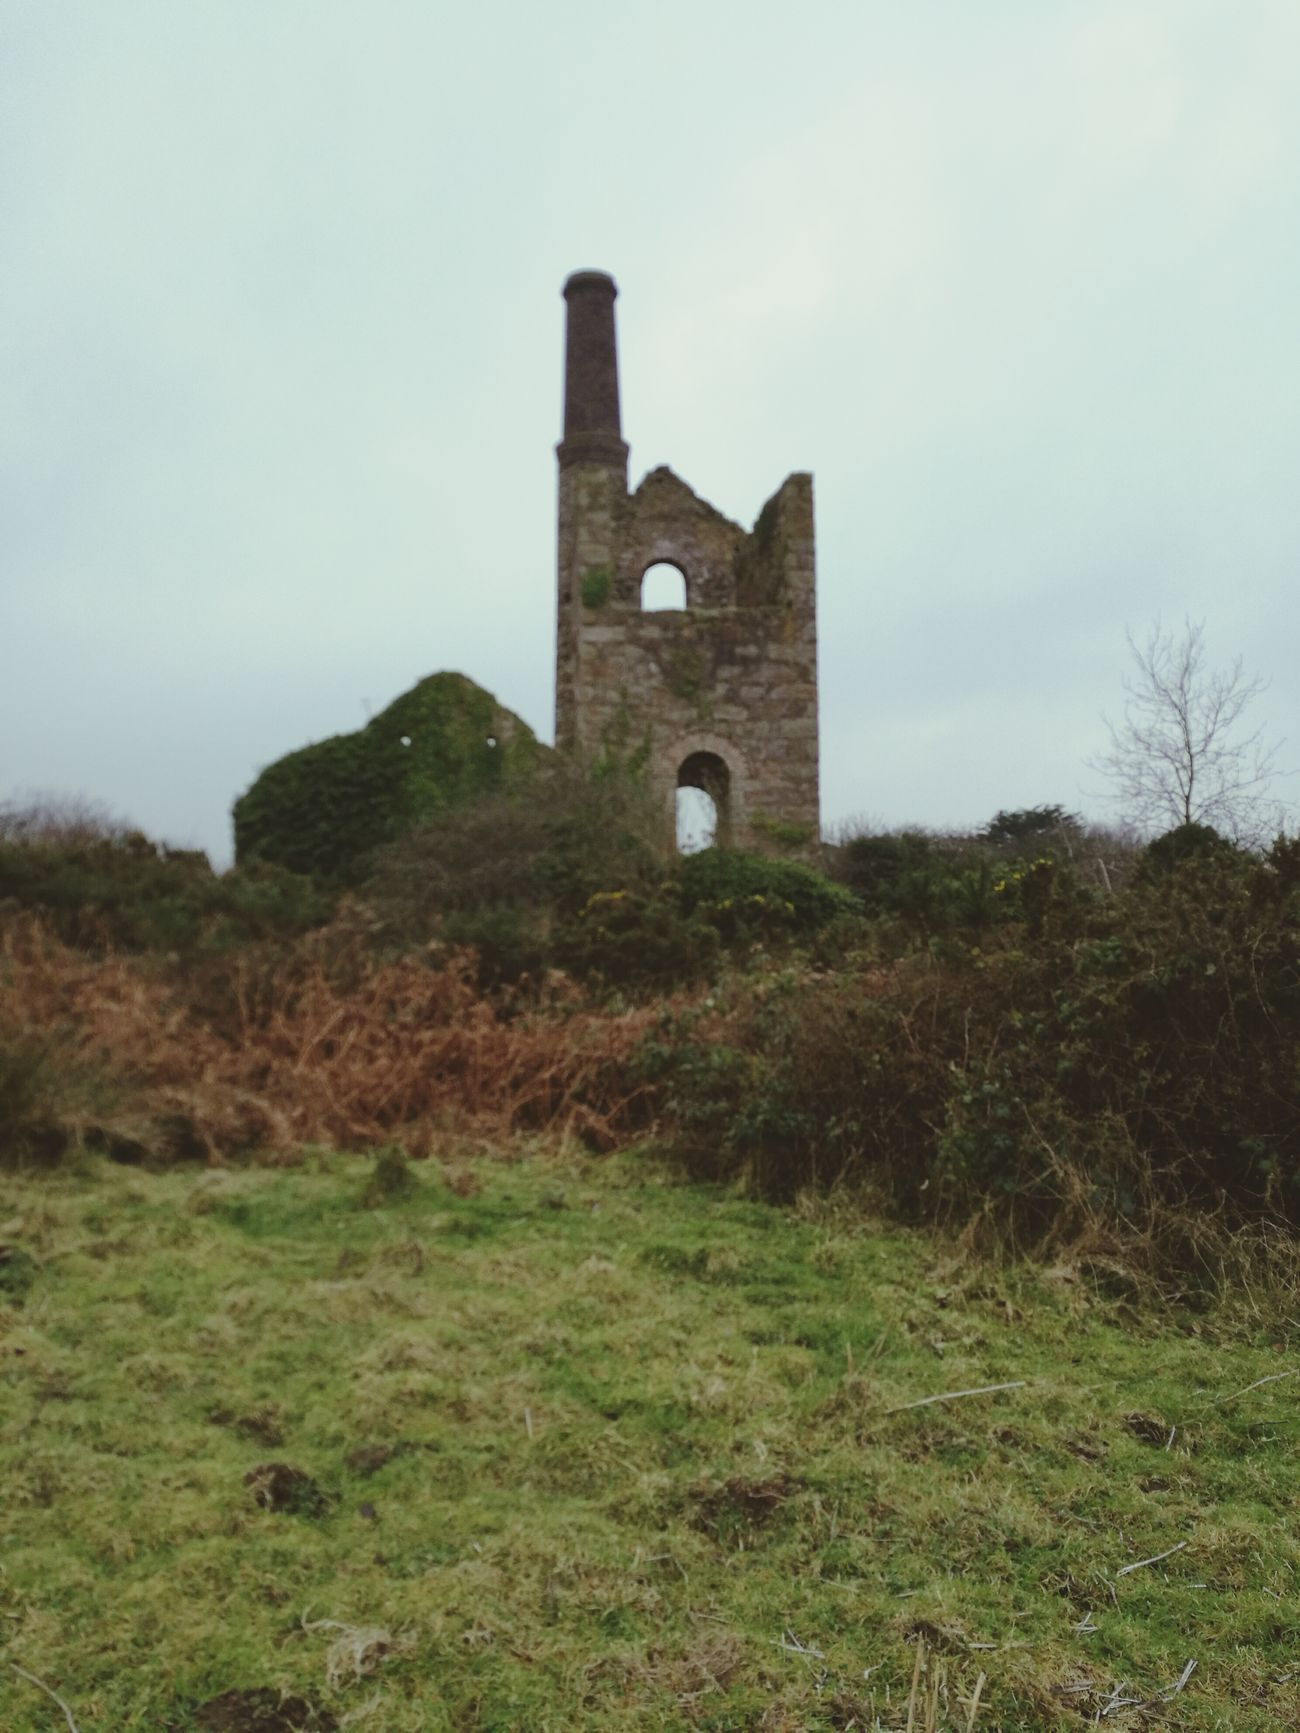 Engine house Outdoors Nature Grass